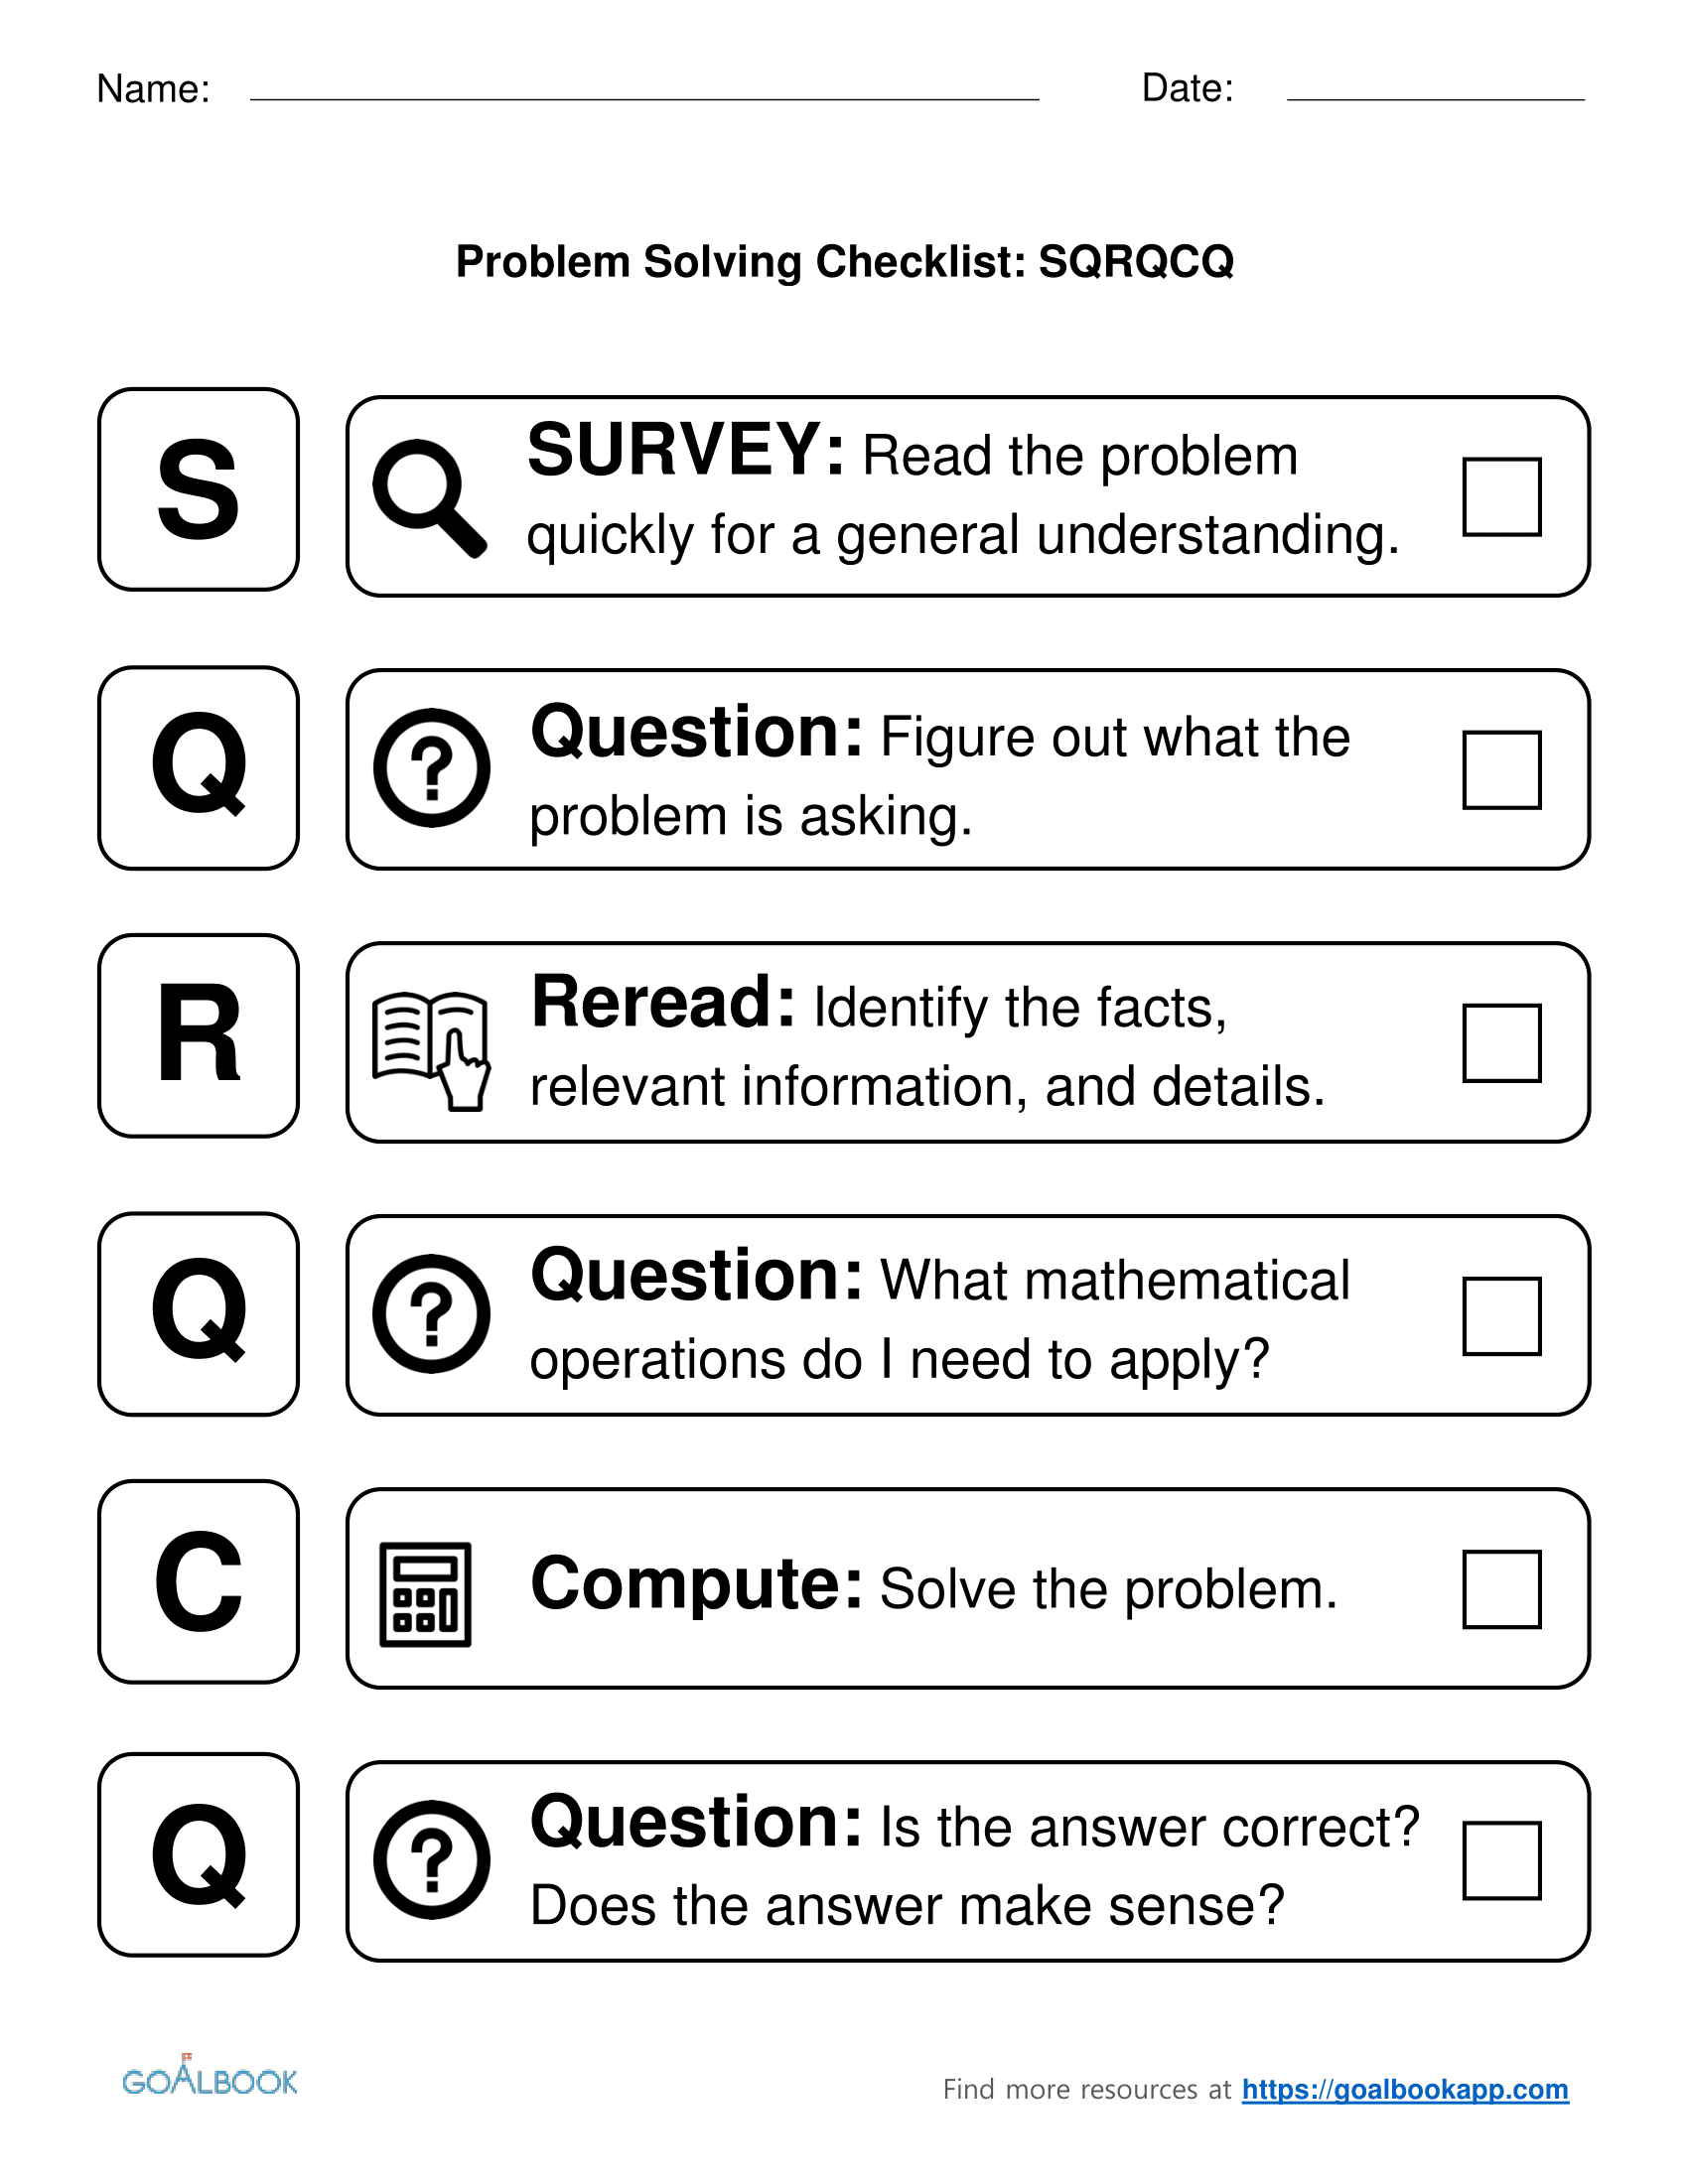 Sqrqcq Problem Solving Checklist